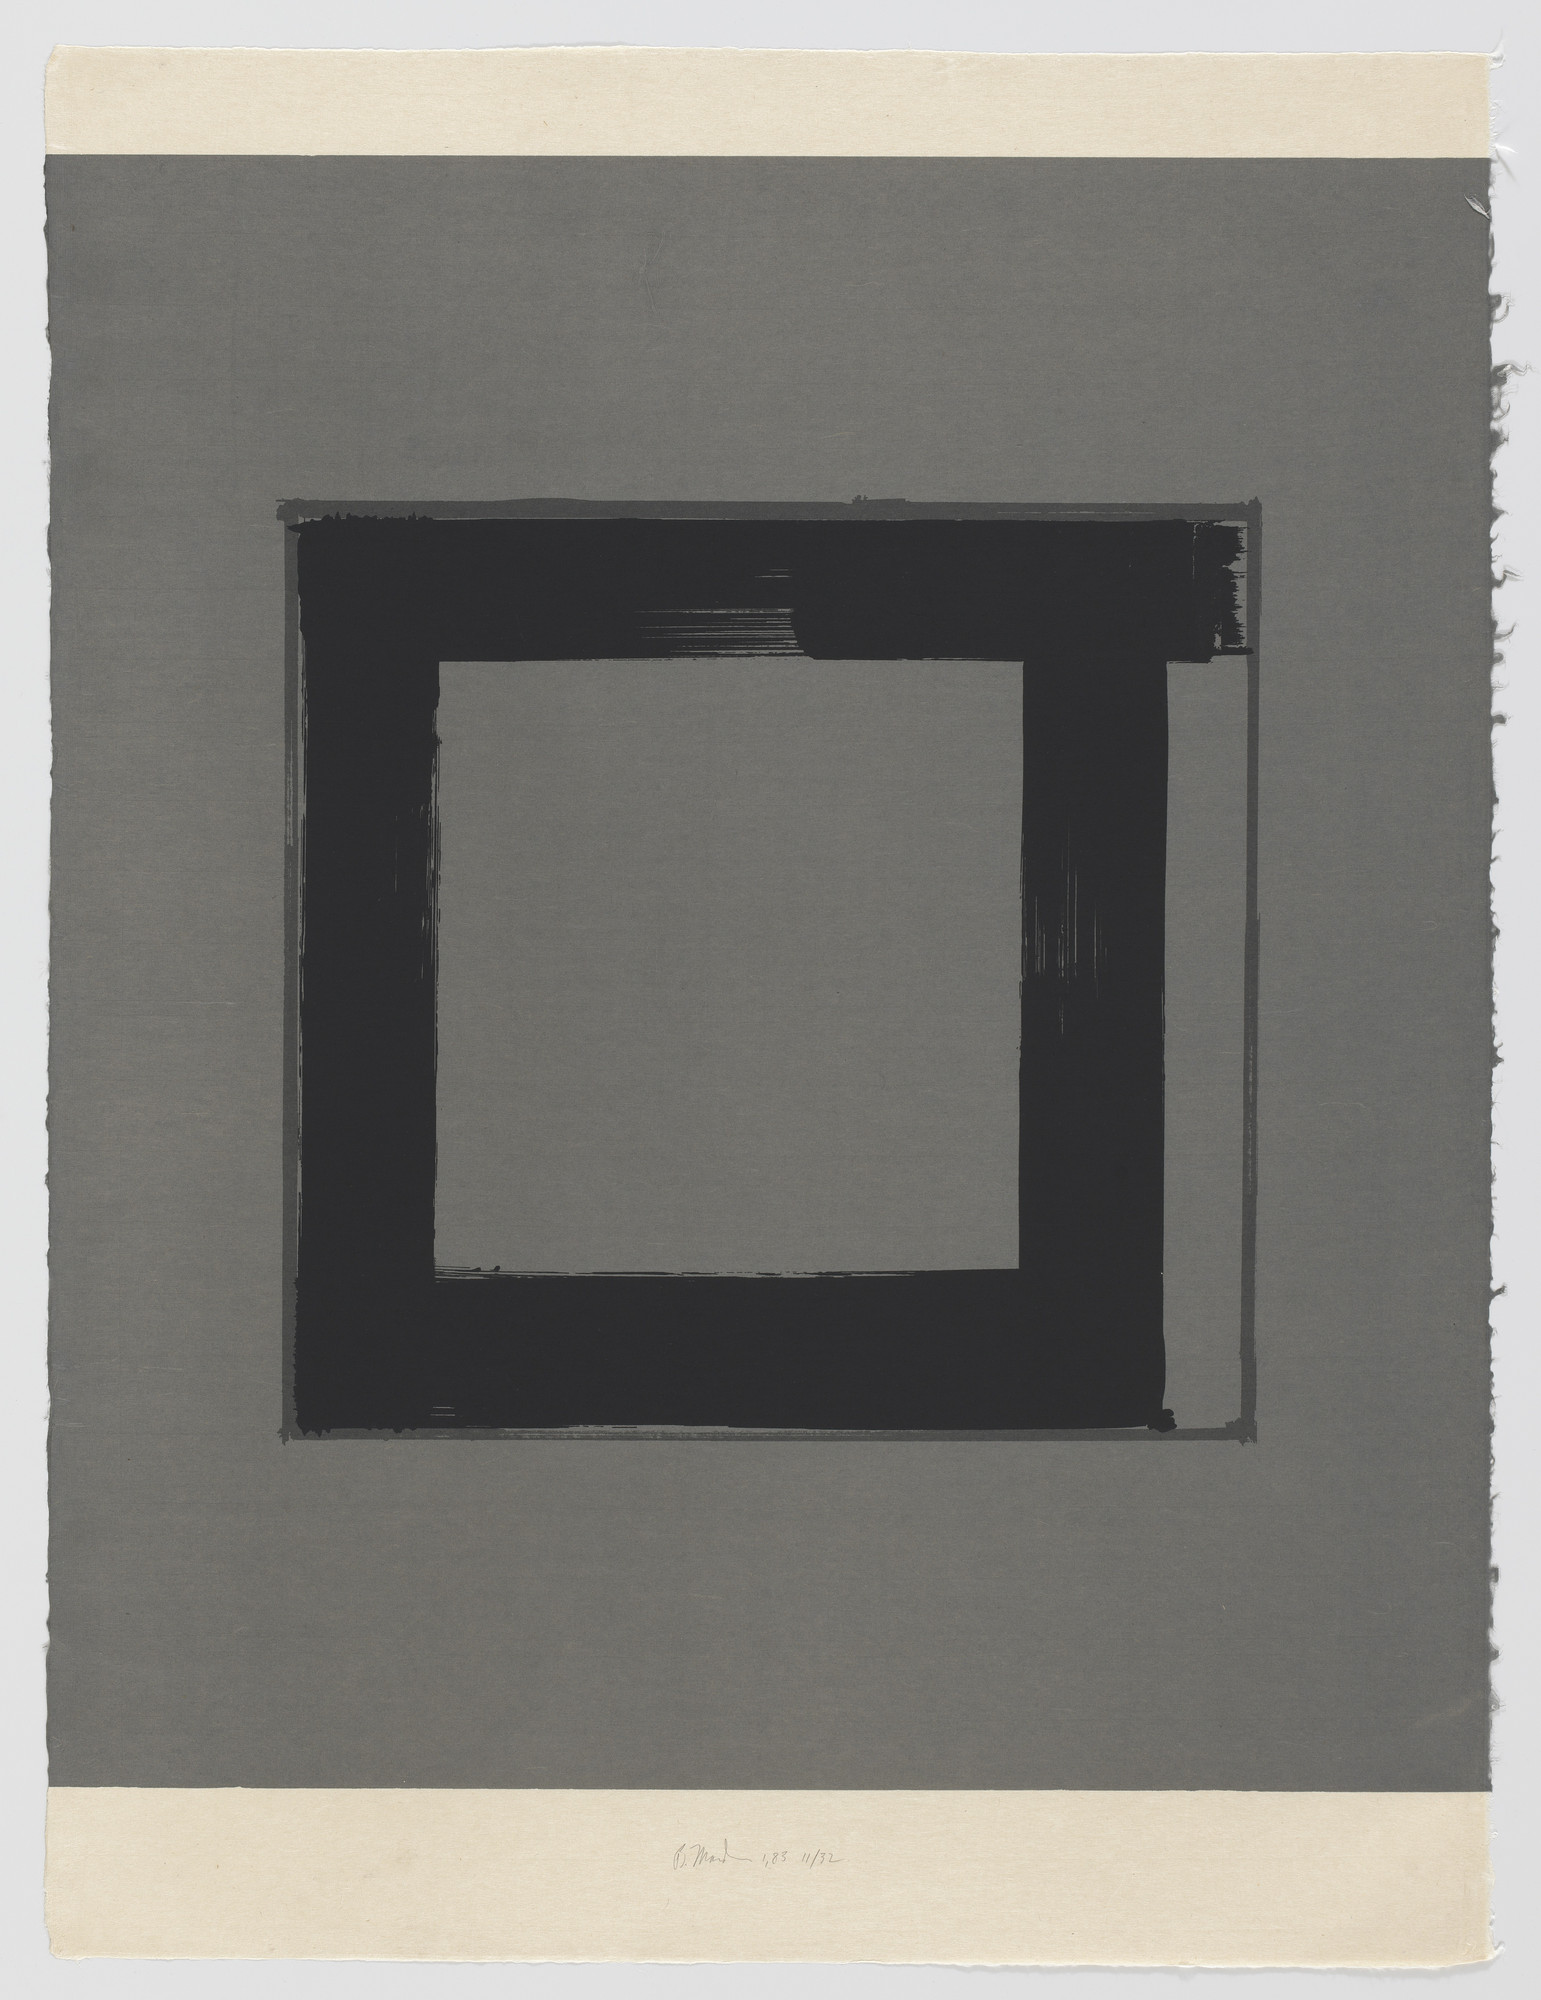 Brice Marden. 1 from the series 1,2,3,4. 1983